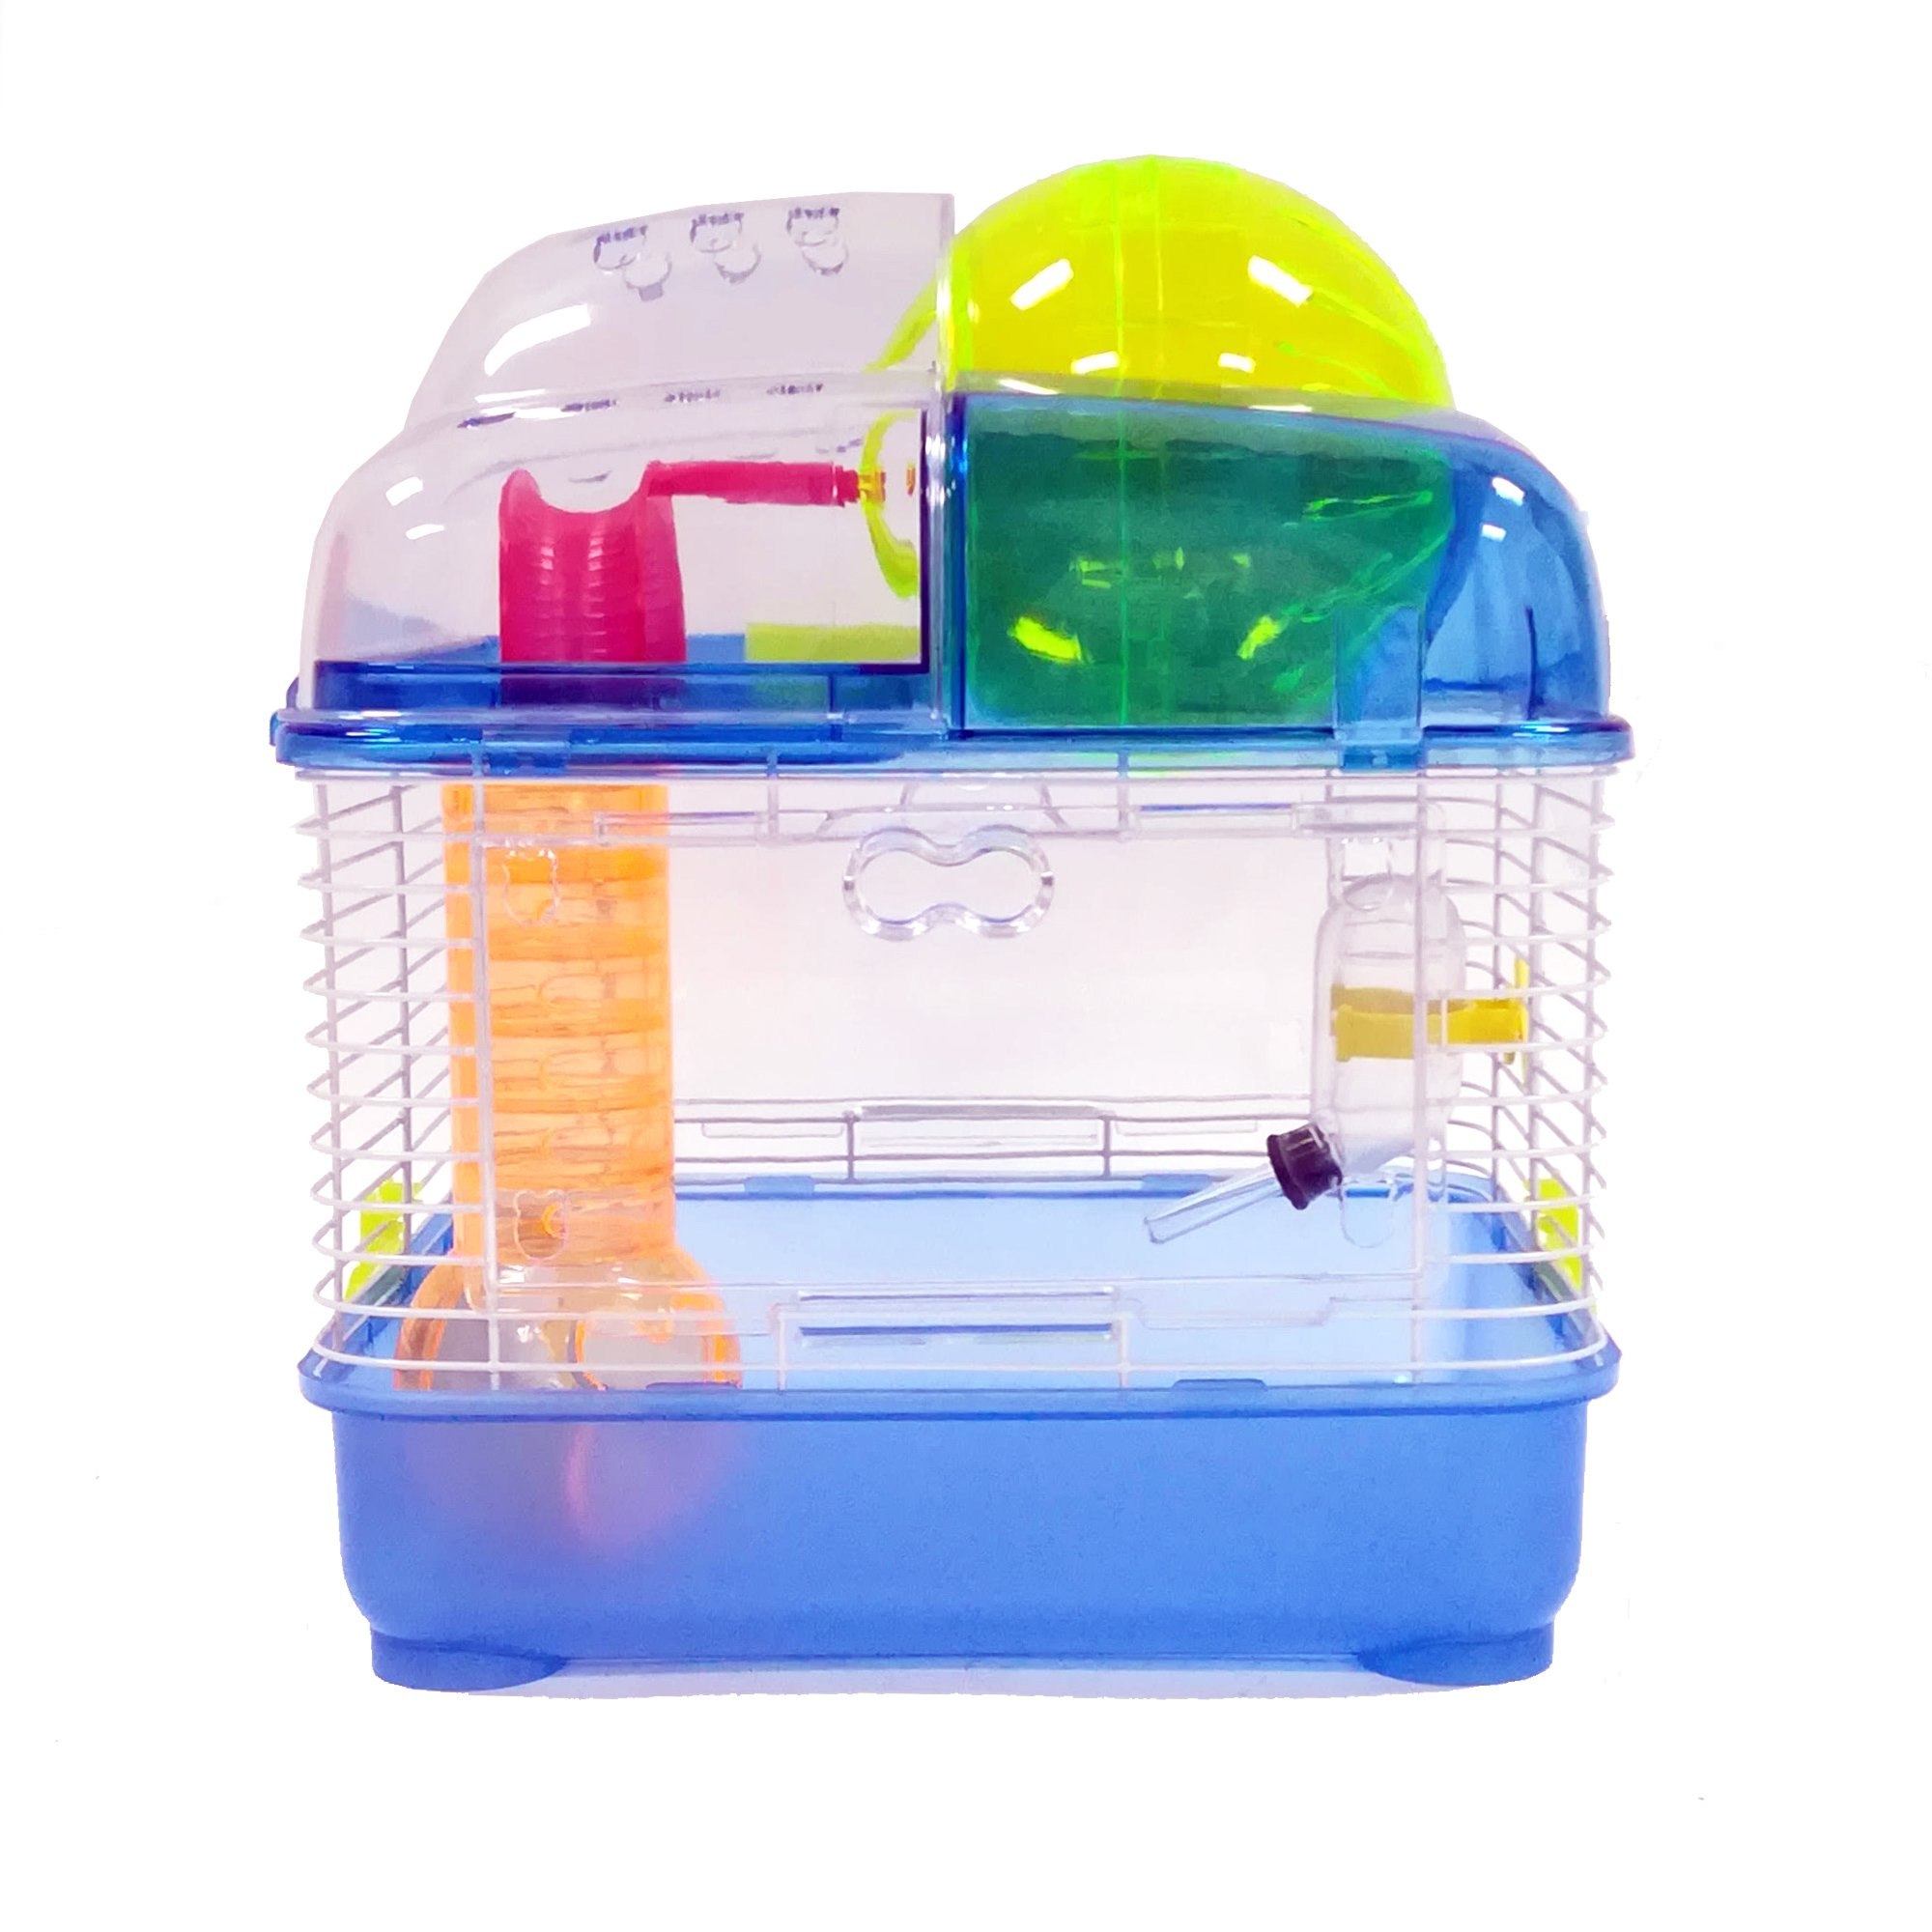 YML Clear Plastic Dwarf Hamster Mice Cage with Ball on Top, Blue